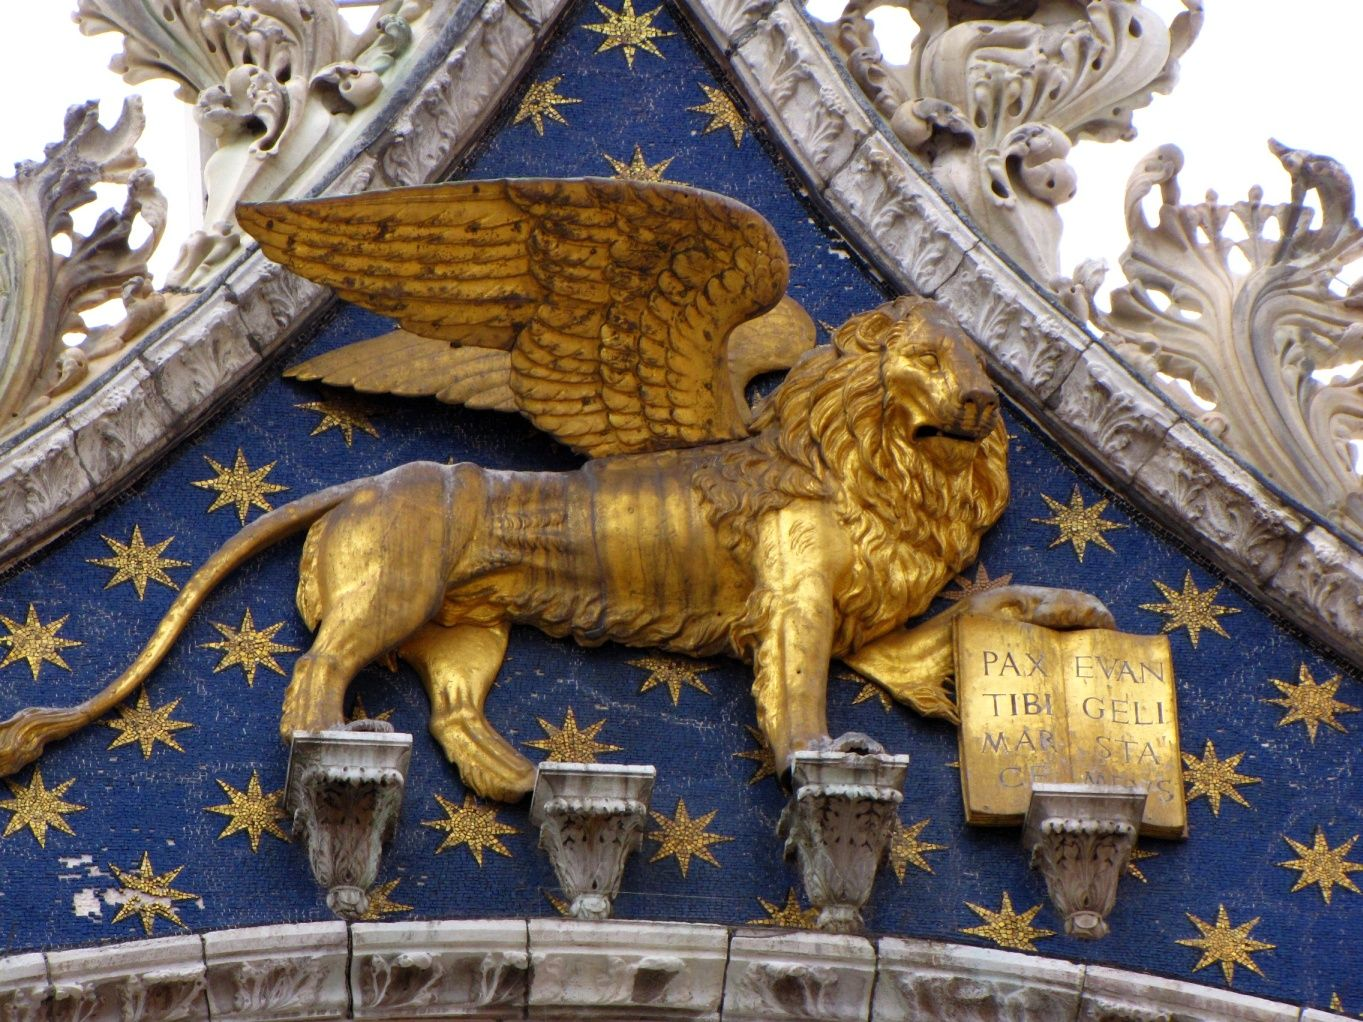 St. Mark the Evangelist is symbolized with a lion